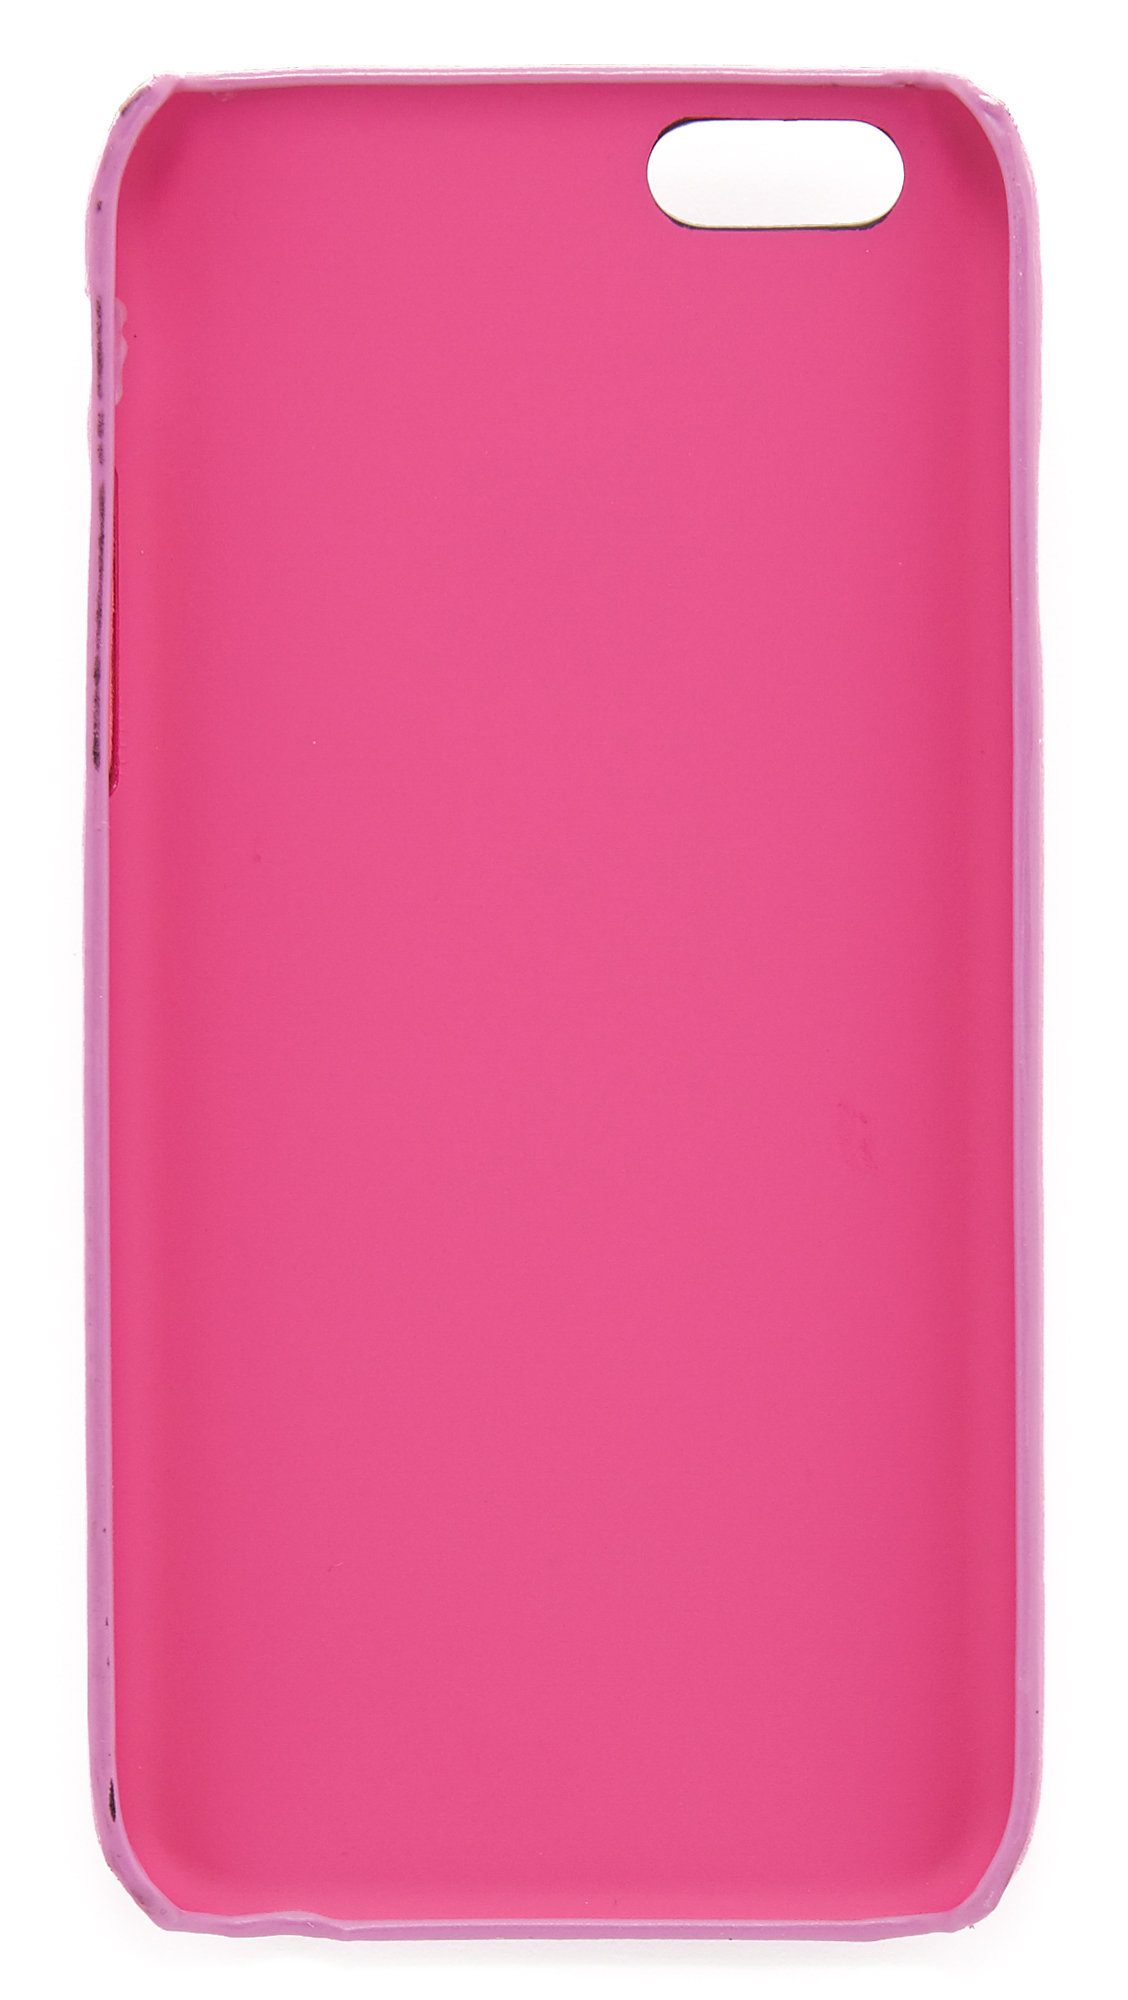 lyst iphoria lining iphone 6 6s case in pink. Black Bedroom Furniture Sets. Home Design Ideas